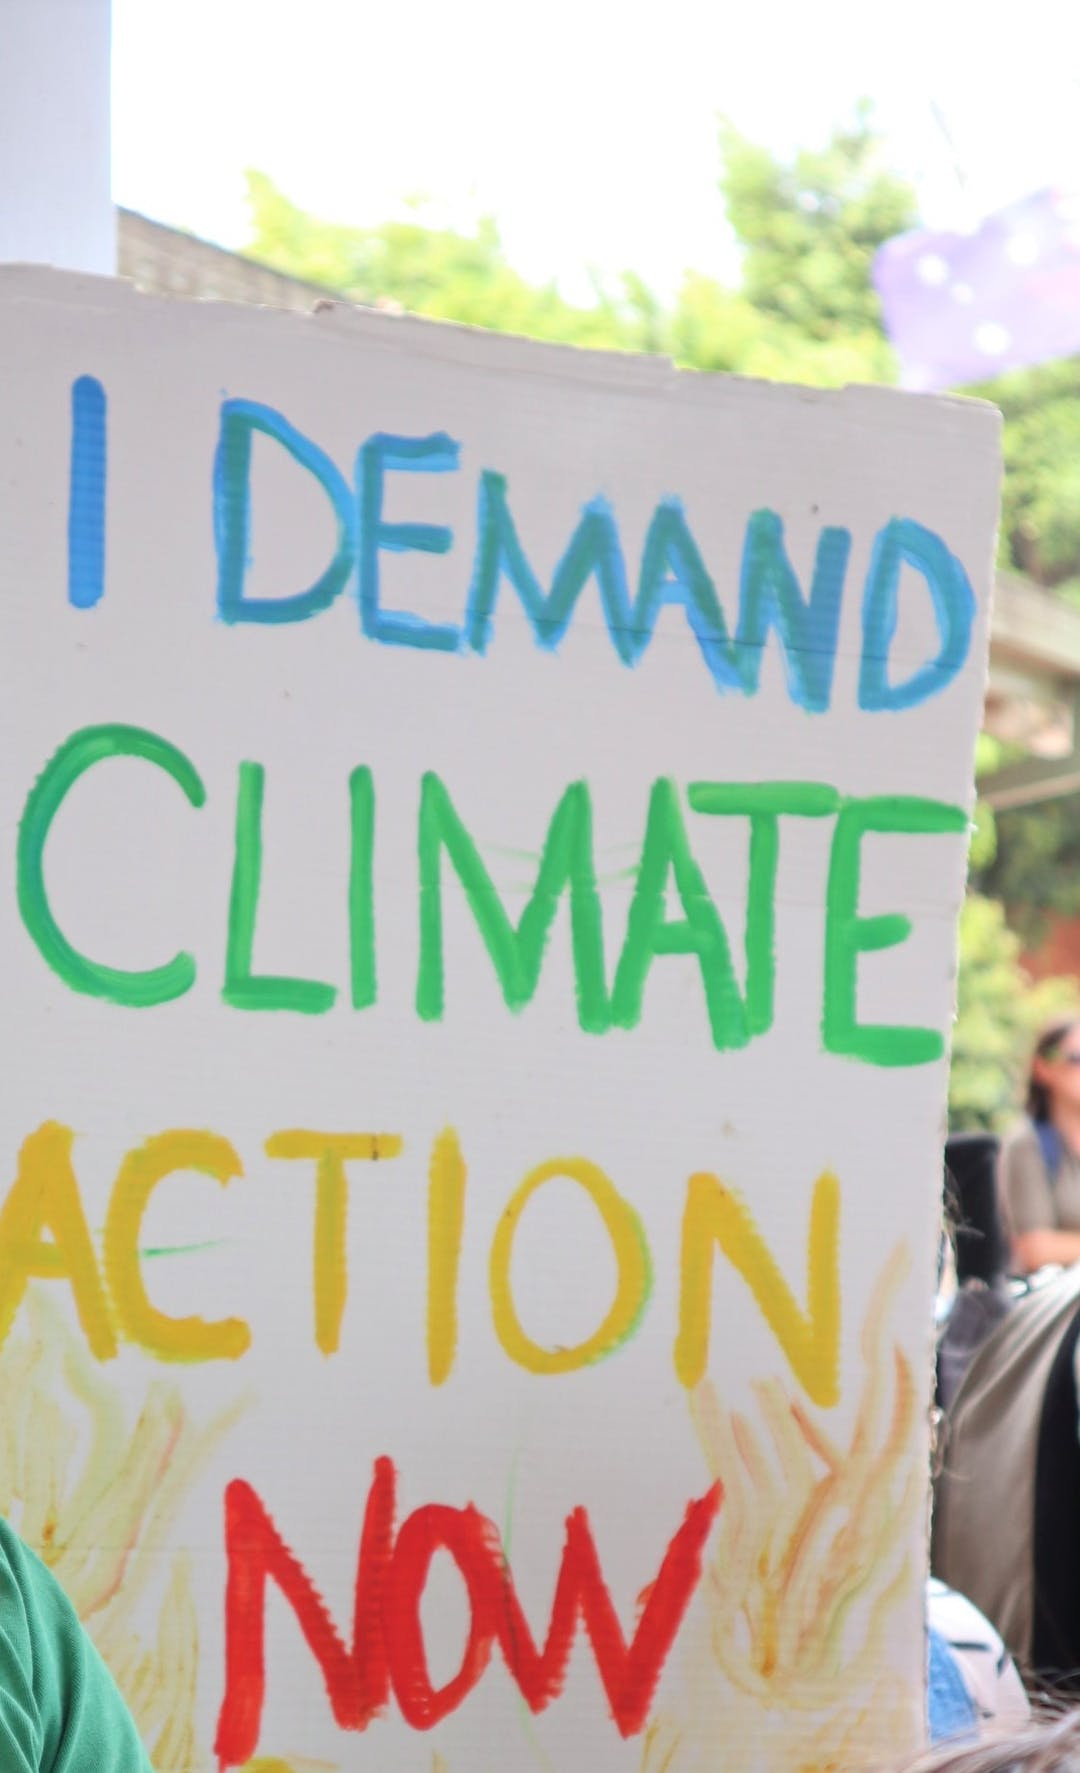 I demand climate action now sign